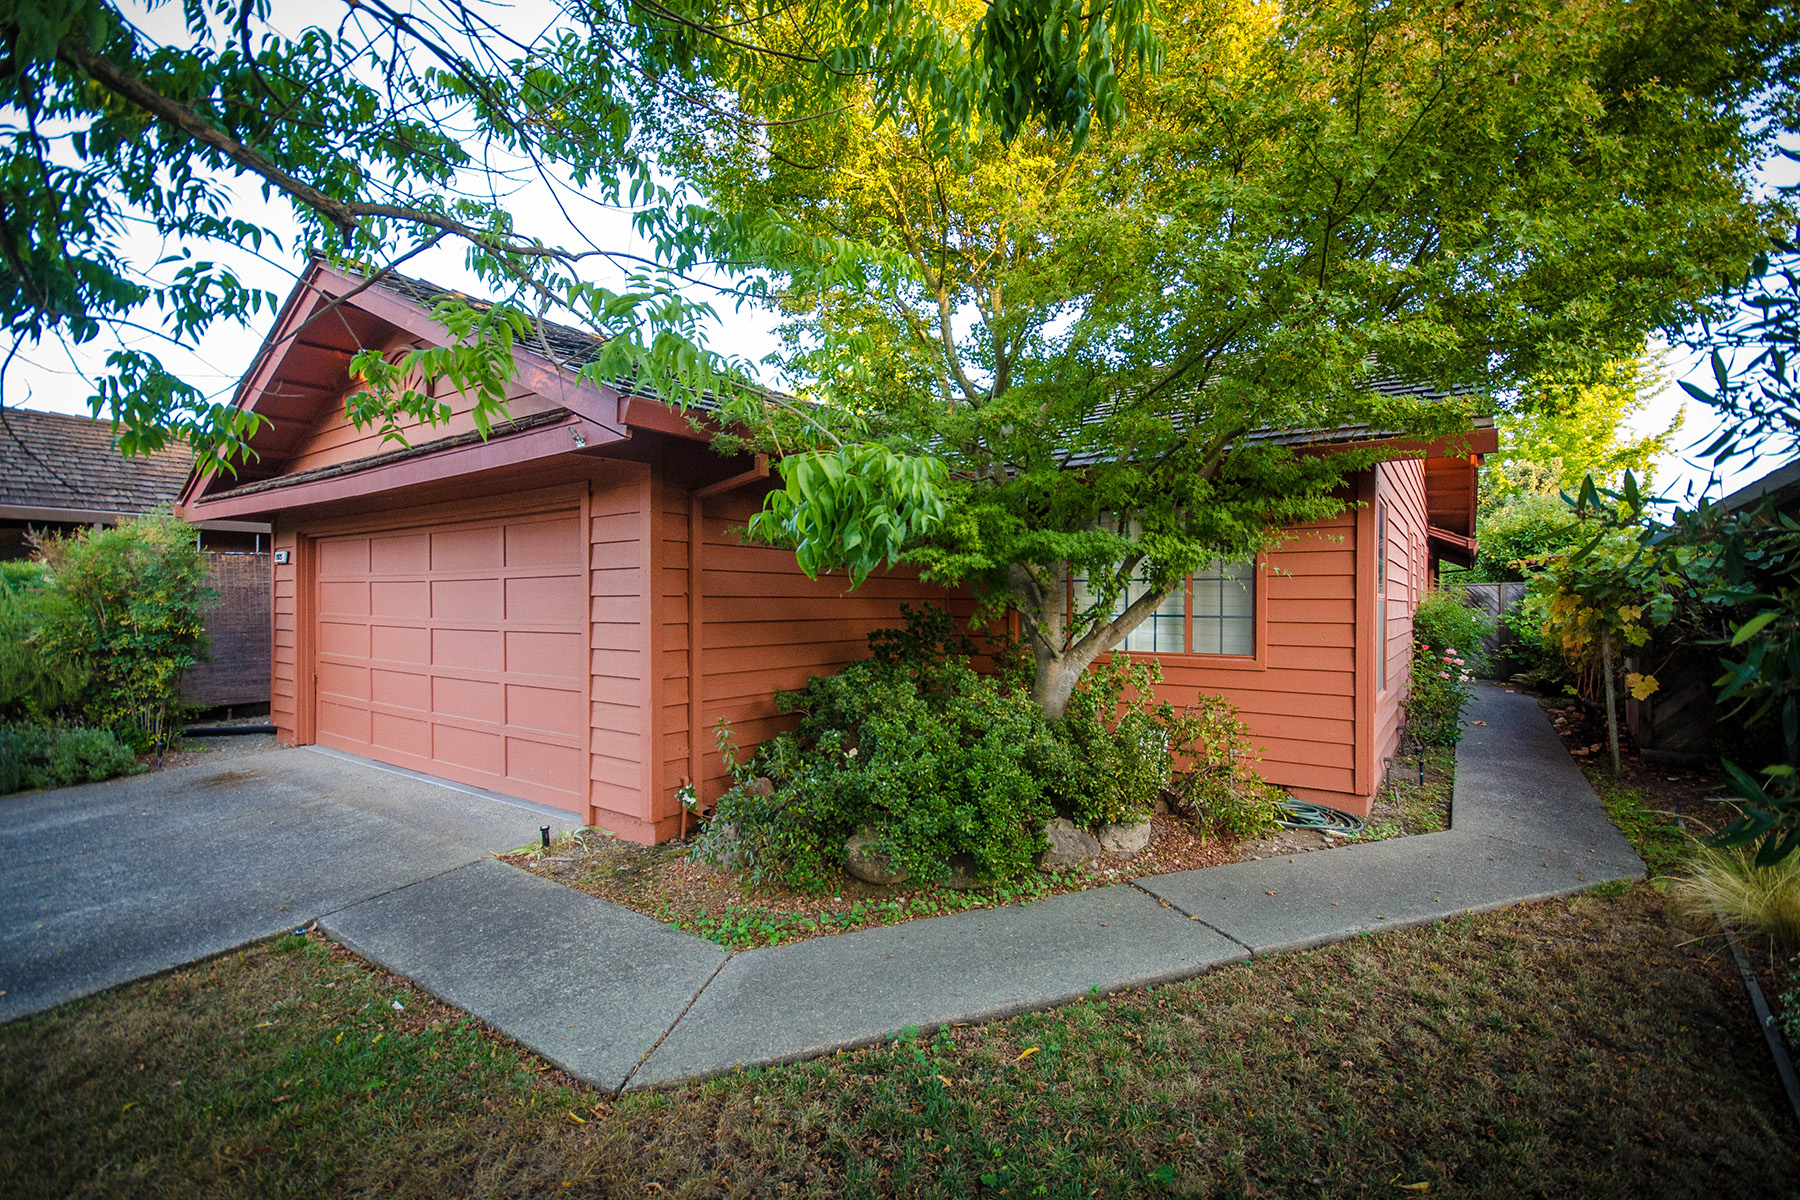 Single Family Home for Sale at 1925 Vintner Ct, Yountville, CA 94599 1925 Vintner Ct Yountville, California 94599 United States